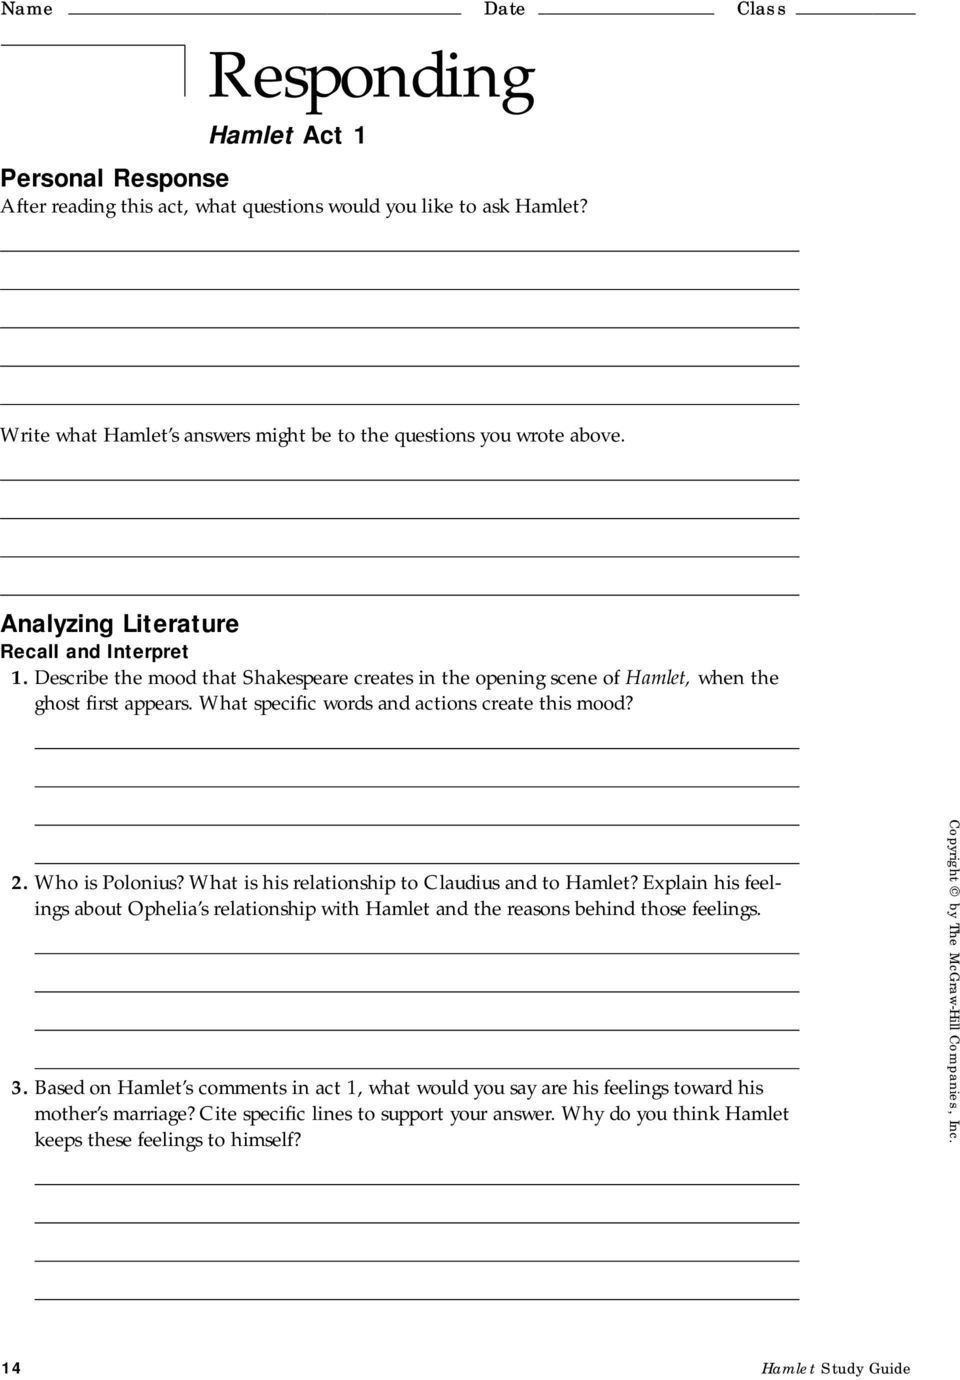 T He G Lencoe L Iterature L Ibrary Study Guide For Hamlet By William Shakespeare Pdf Free Download [ 1380 x 960 Pixel ]